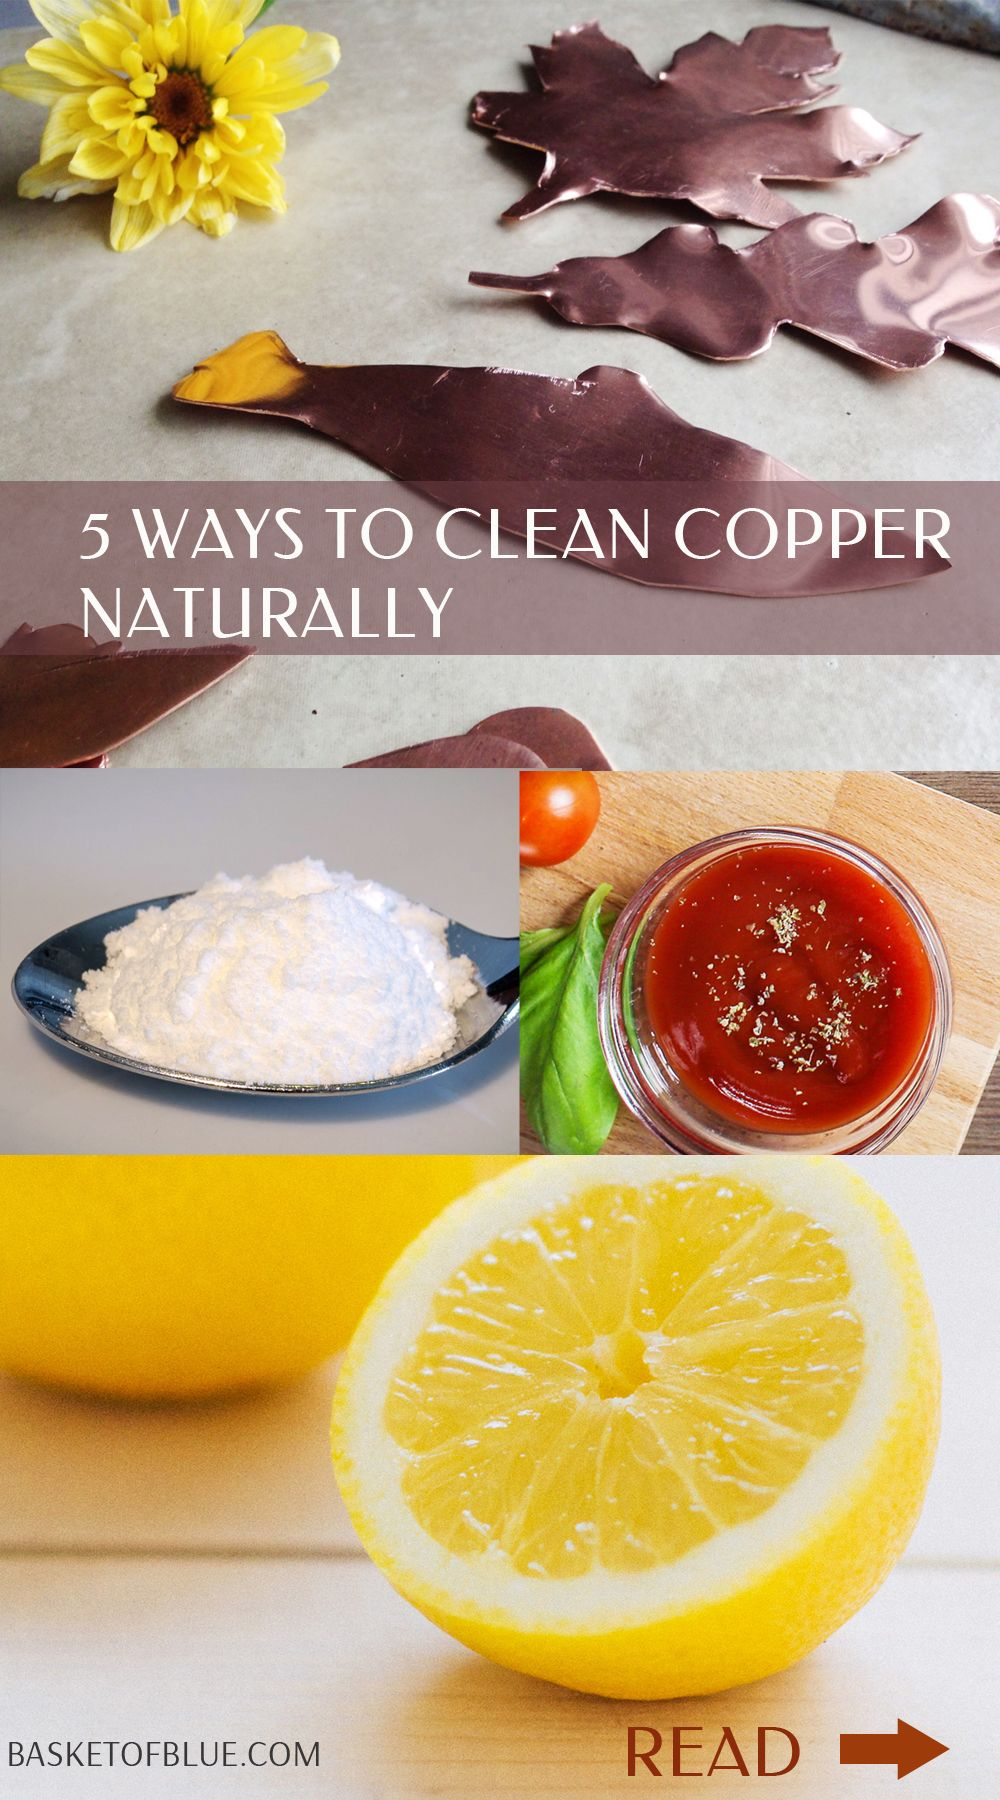 5 Ways to Clean Copper Naturally | How to clean copper ...